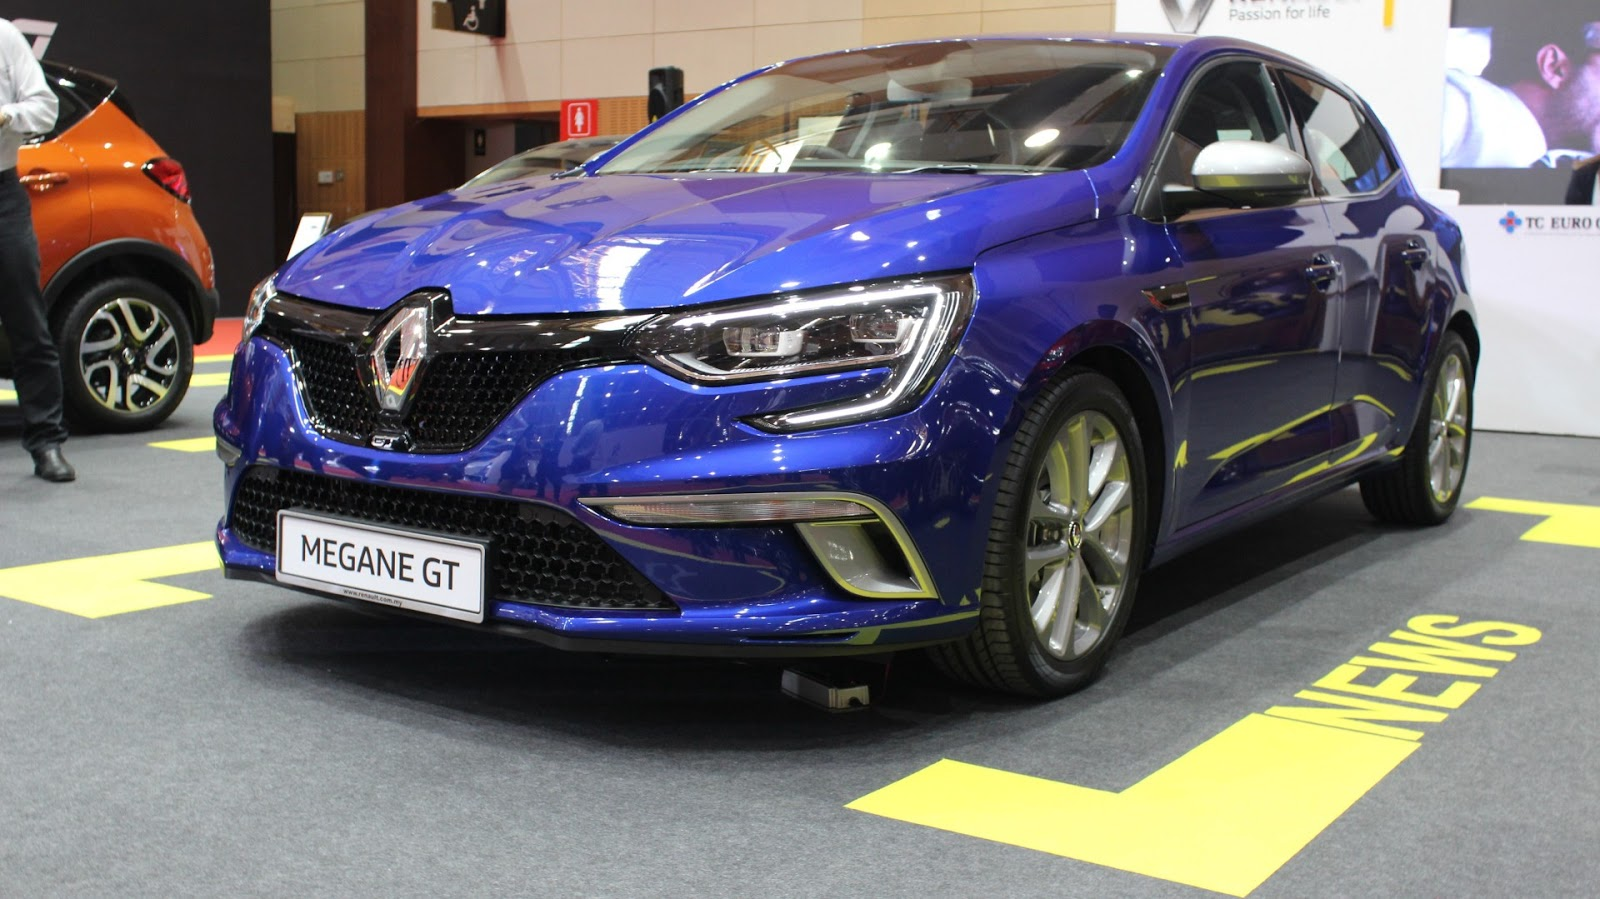 Motoring Malaysia The New Renault Megane Gt It Will Be On Display